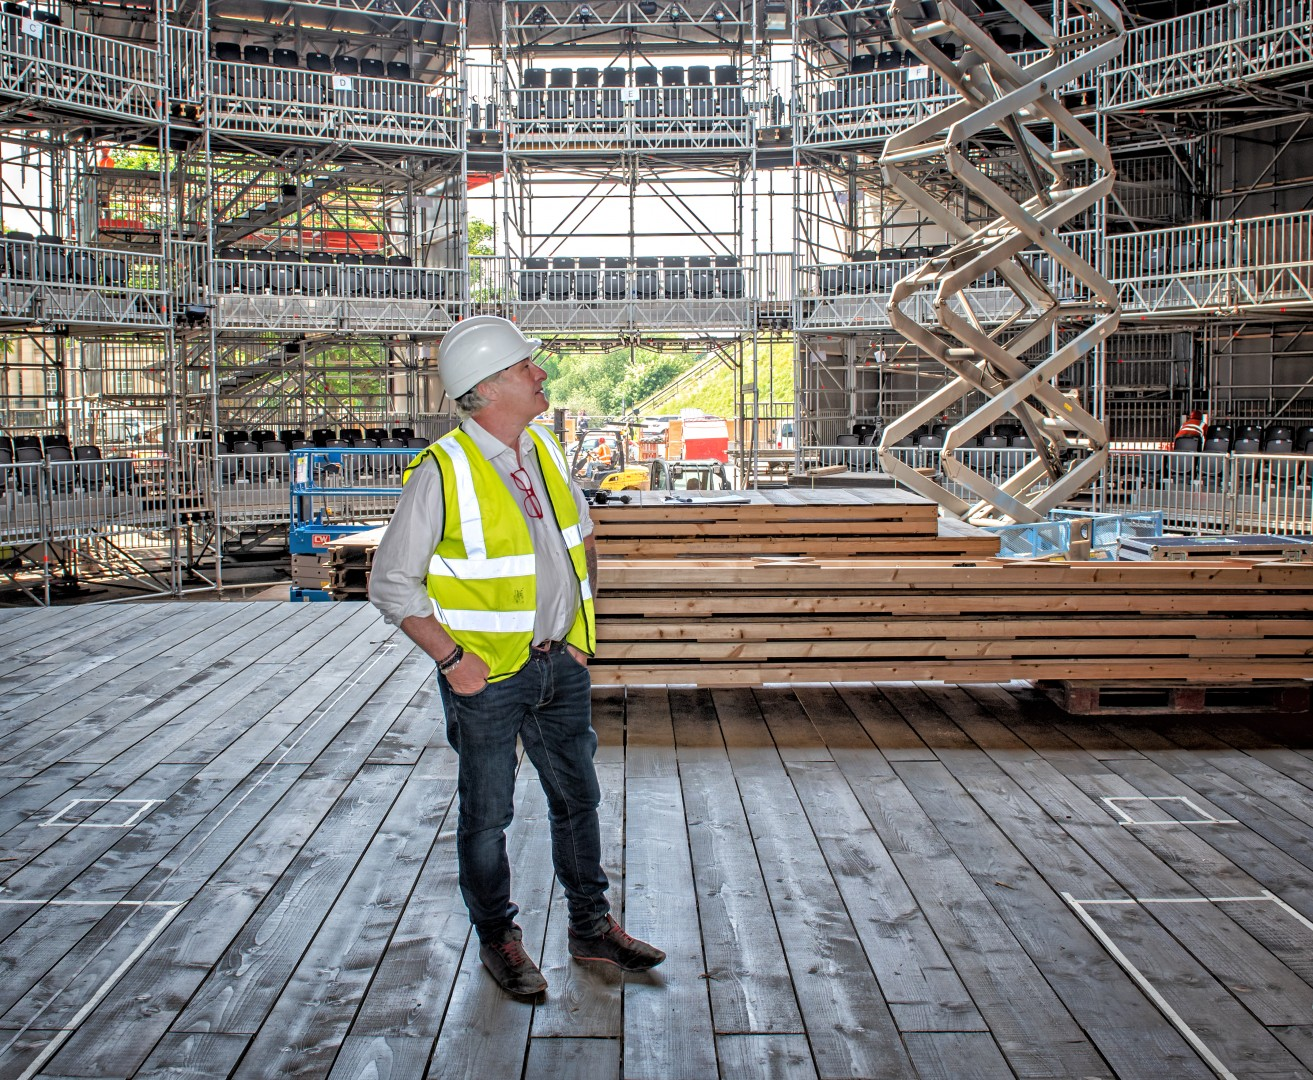 Quintessentially English Shakespeares Rose Theatre Construction